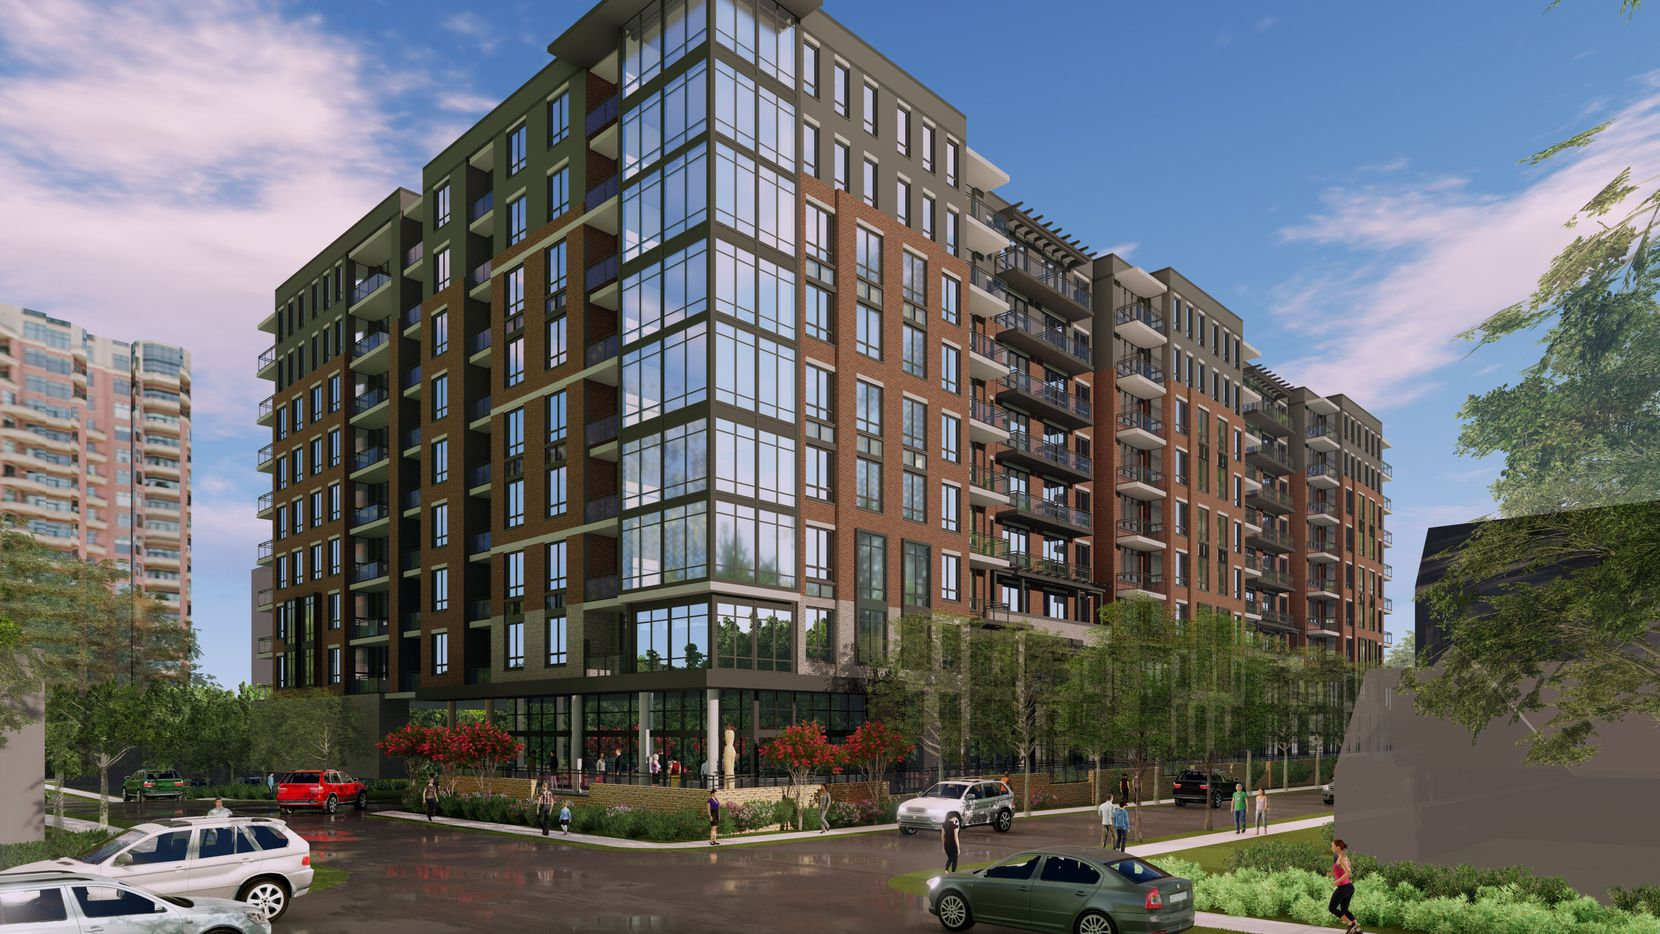 Toll Brothers is studying plans for a 9-story apartment building near Turtle Creek.